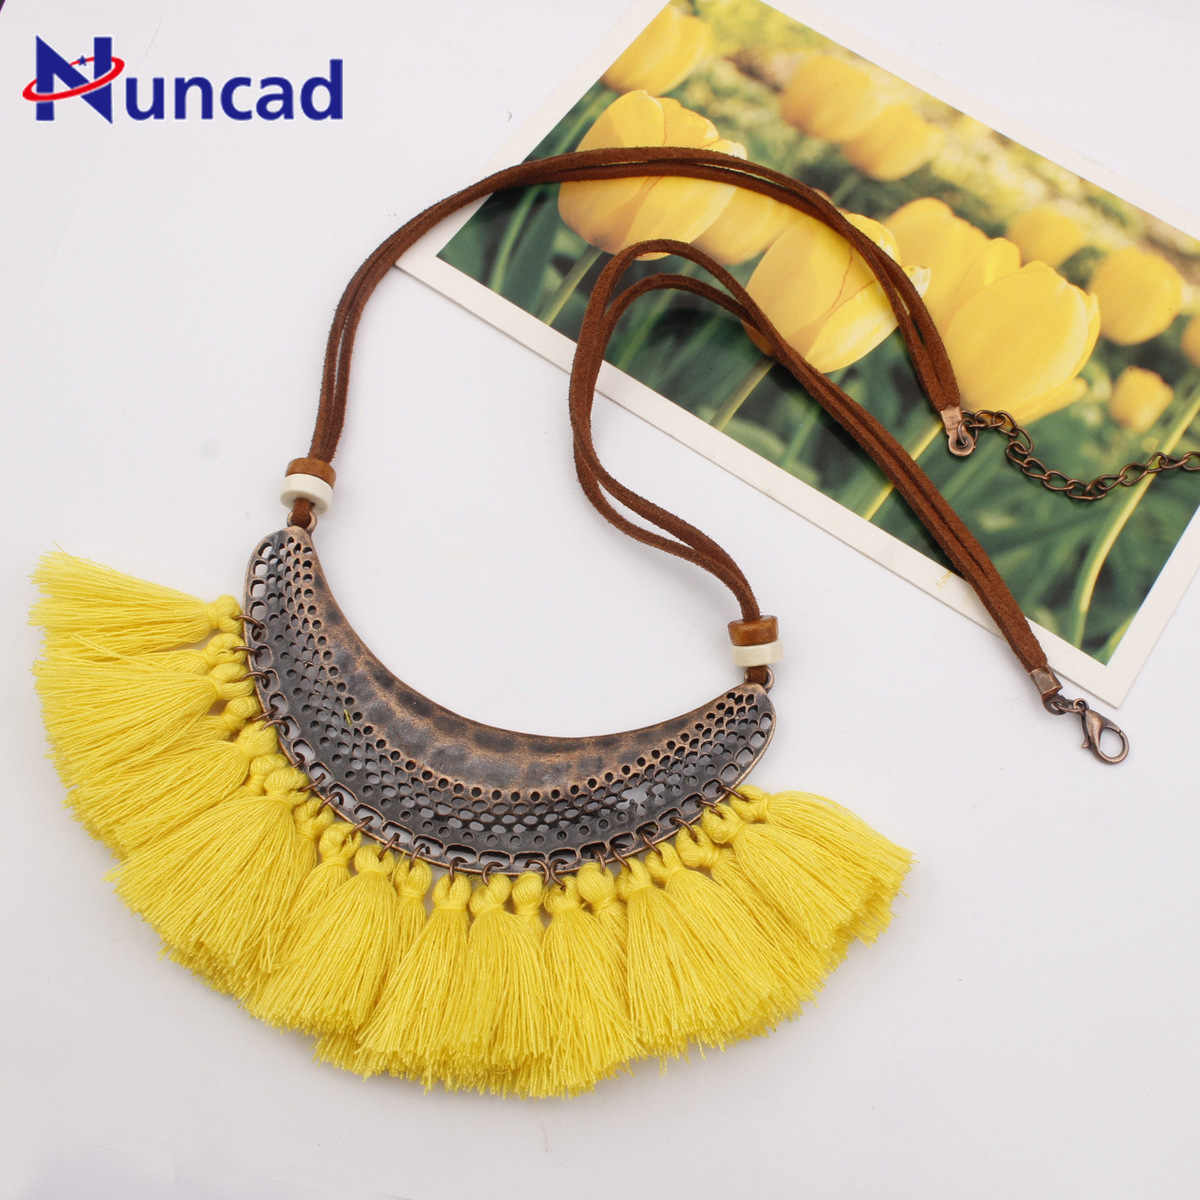 Fashion Crescent Moon Pendant Necklace 2018 New Bohemia Colorful Tassels Sweater Chain Necklace Woman Accessories